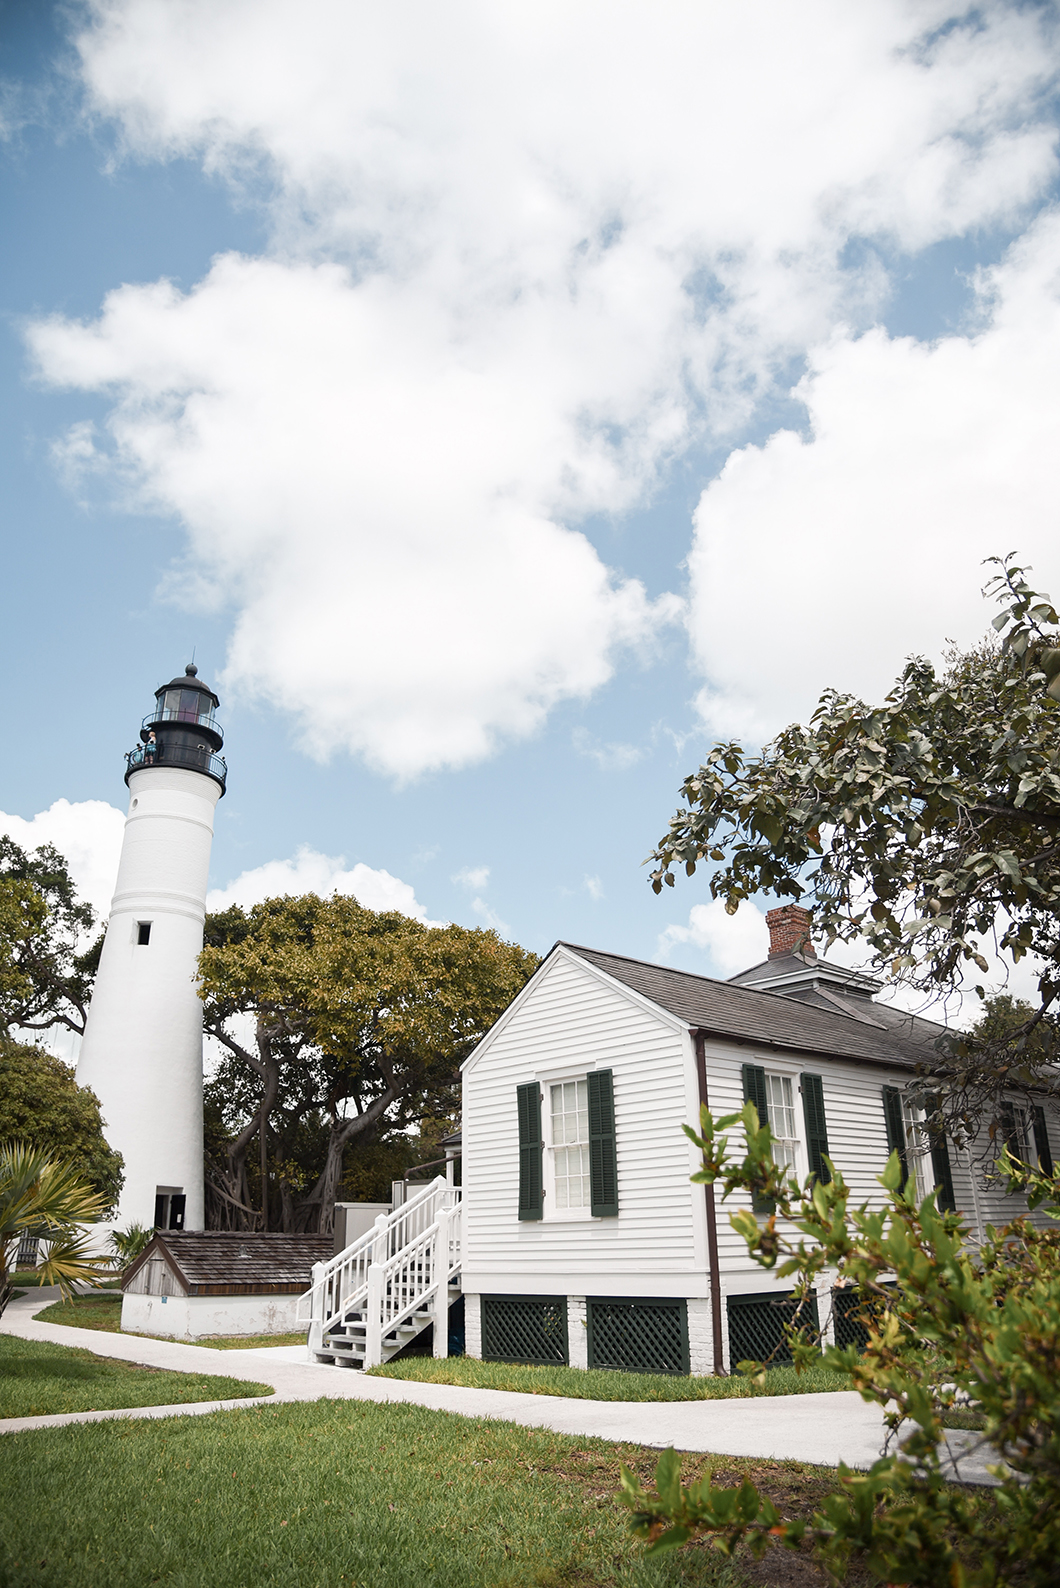 Visiter le phare de Key West